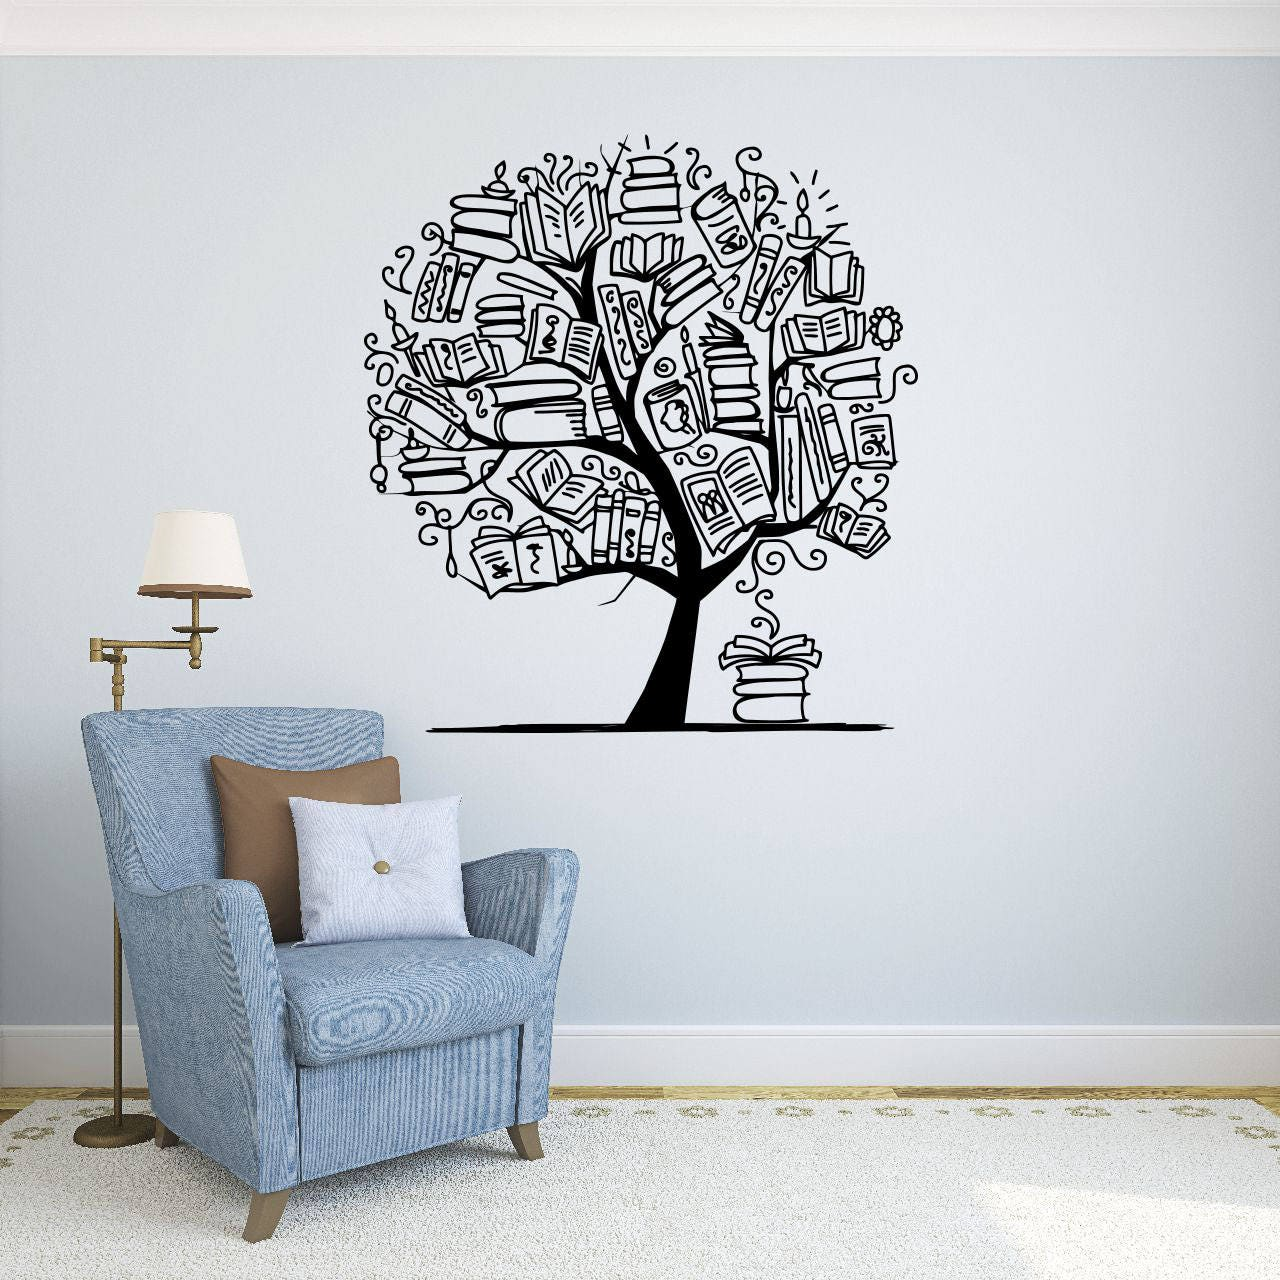 Welcome Wall Sticker Tree With Books Wall Decal Library Vinyl Sticker Education